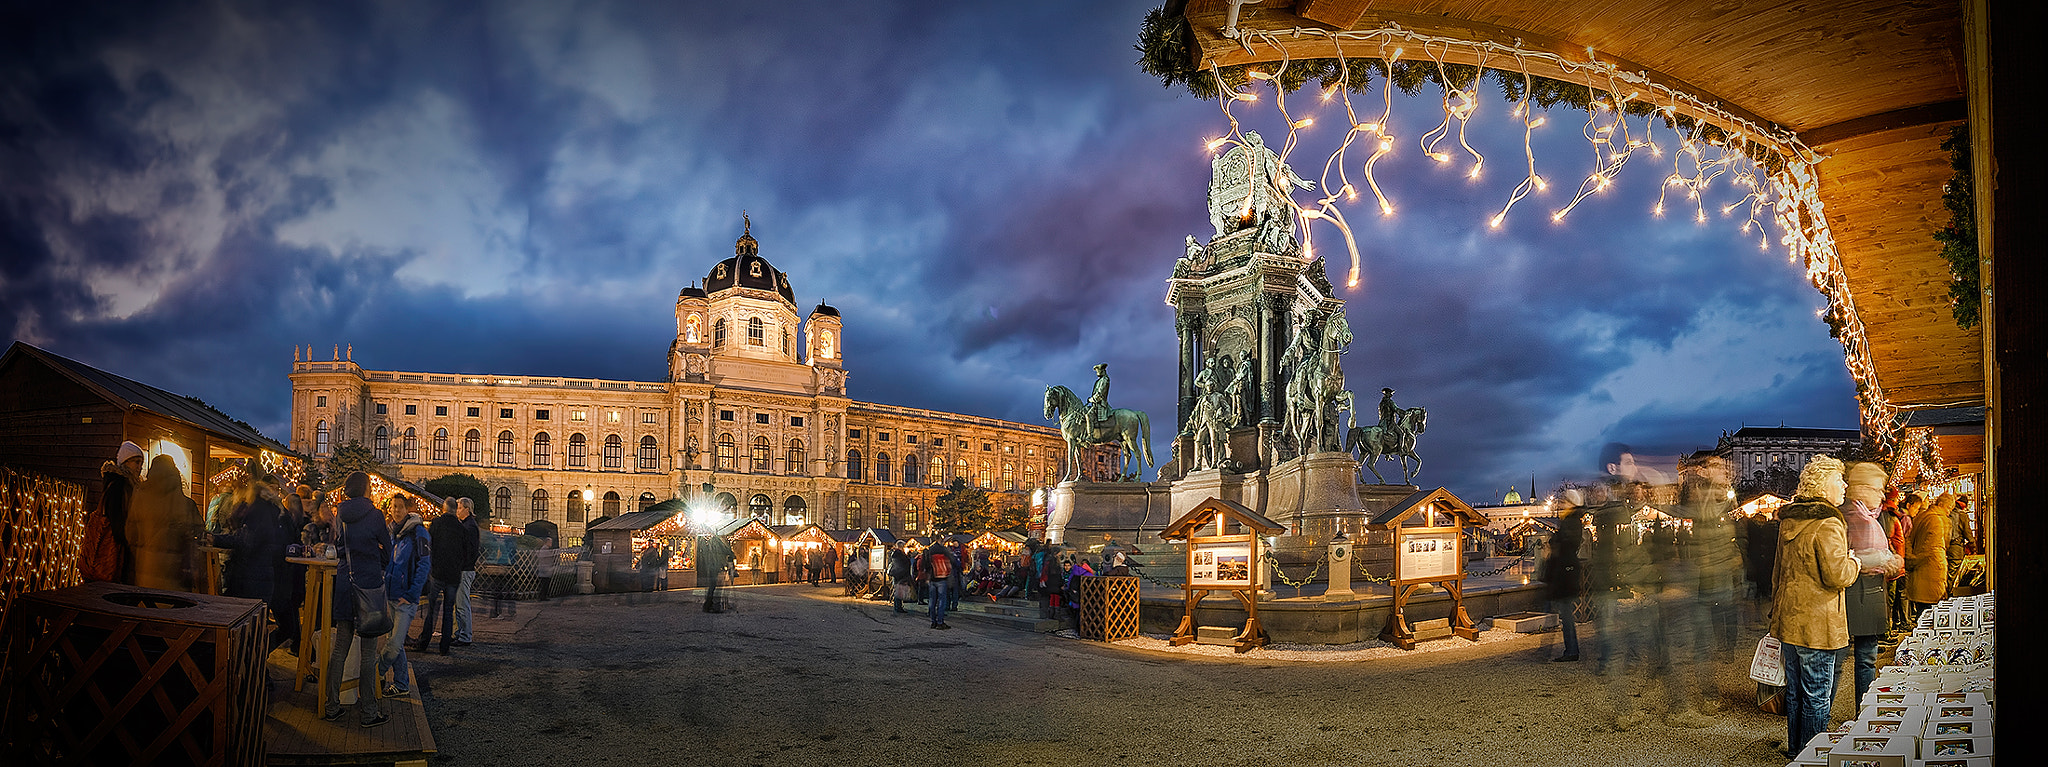 Photograph Vienna by Stoleac Cosmin on 500px